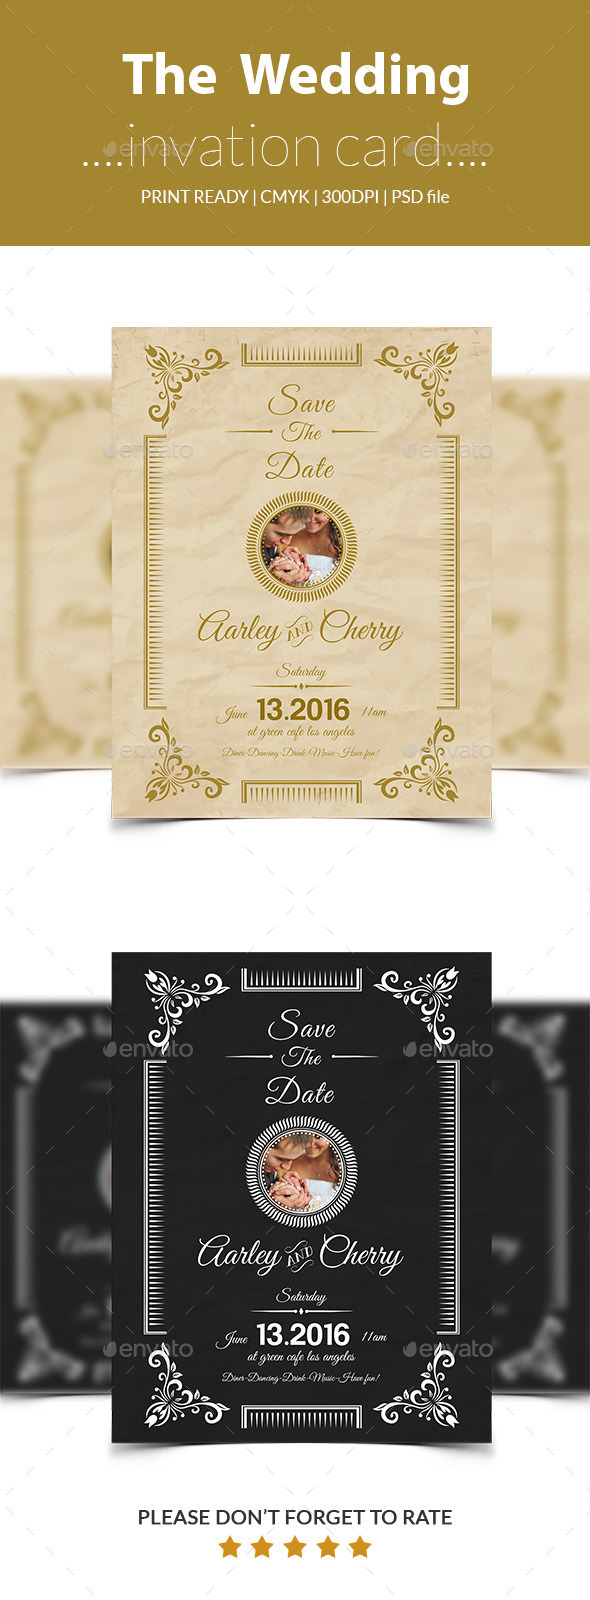 wedding inviation card - Weddings Cards & Invites